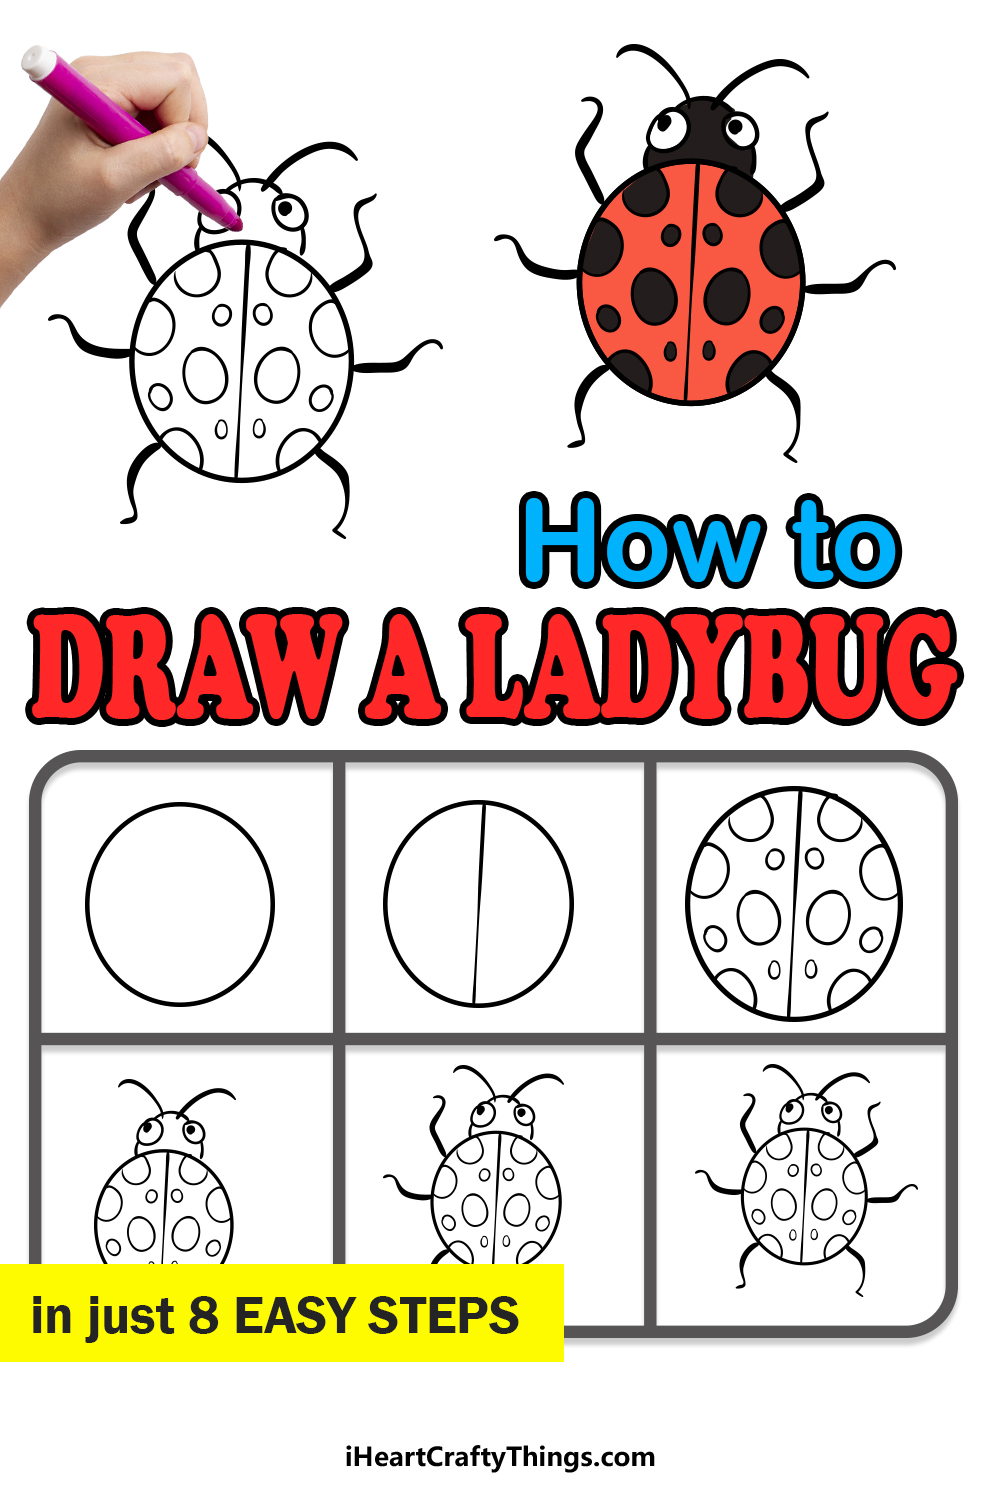 how to draw a ladybug in 8 easy steps